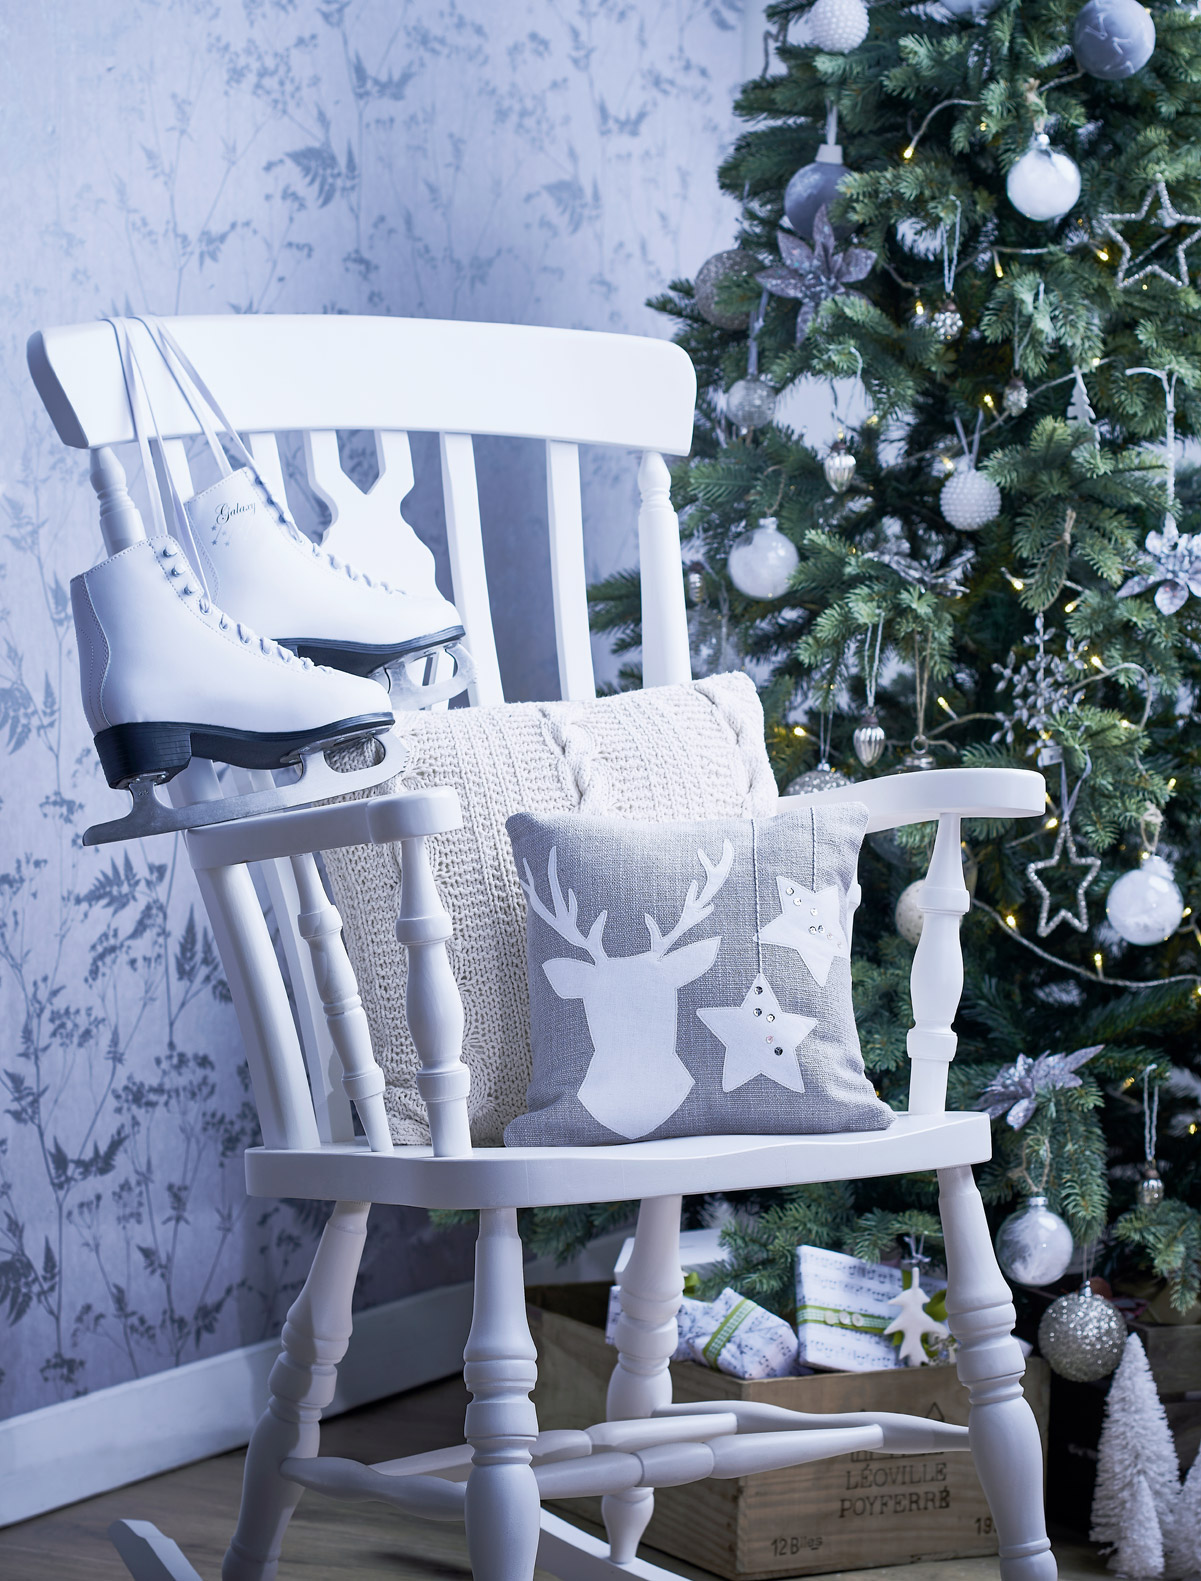 Rocking chair with Christmas tree